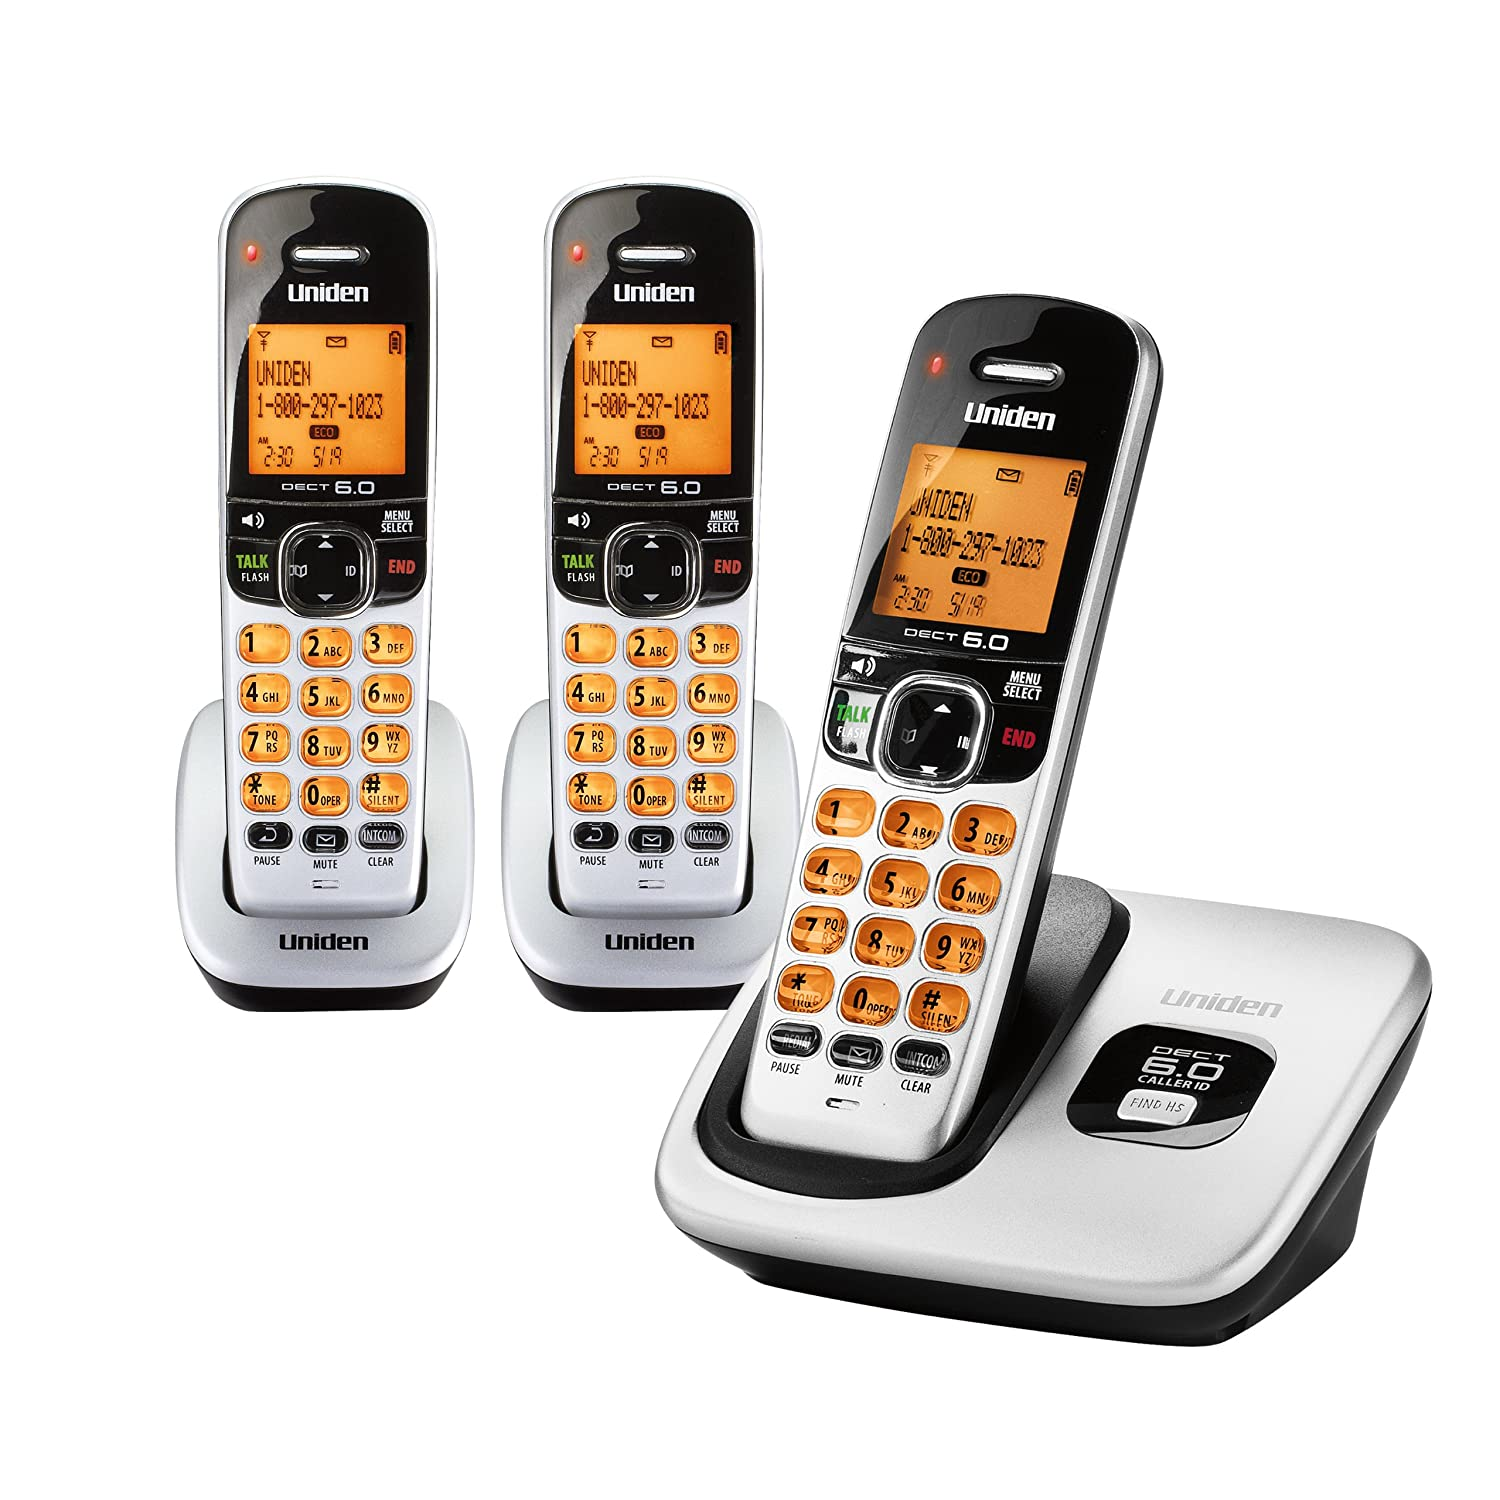 Amazon.com : D1760-3 DECT 6.0 Expandable Cordless Phone with Caller ID,  Silver, 3 Handsets : Cordless Telephones : Office Products